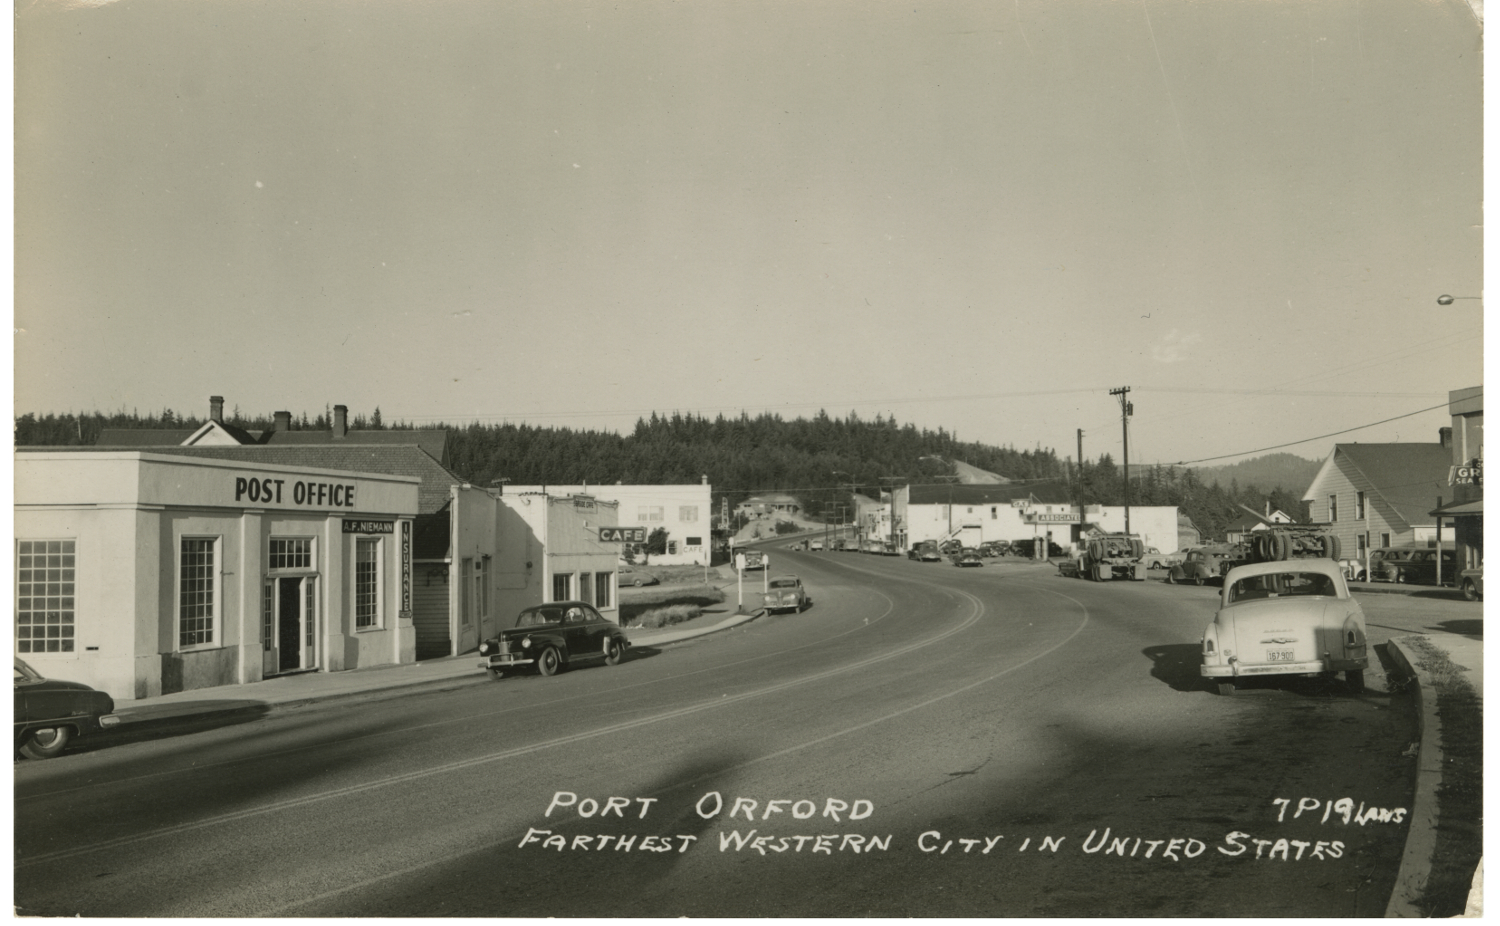 Port Orford Farthest Western City In United States